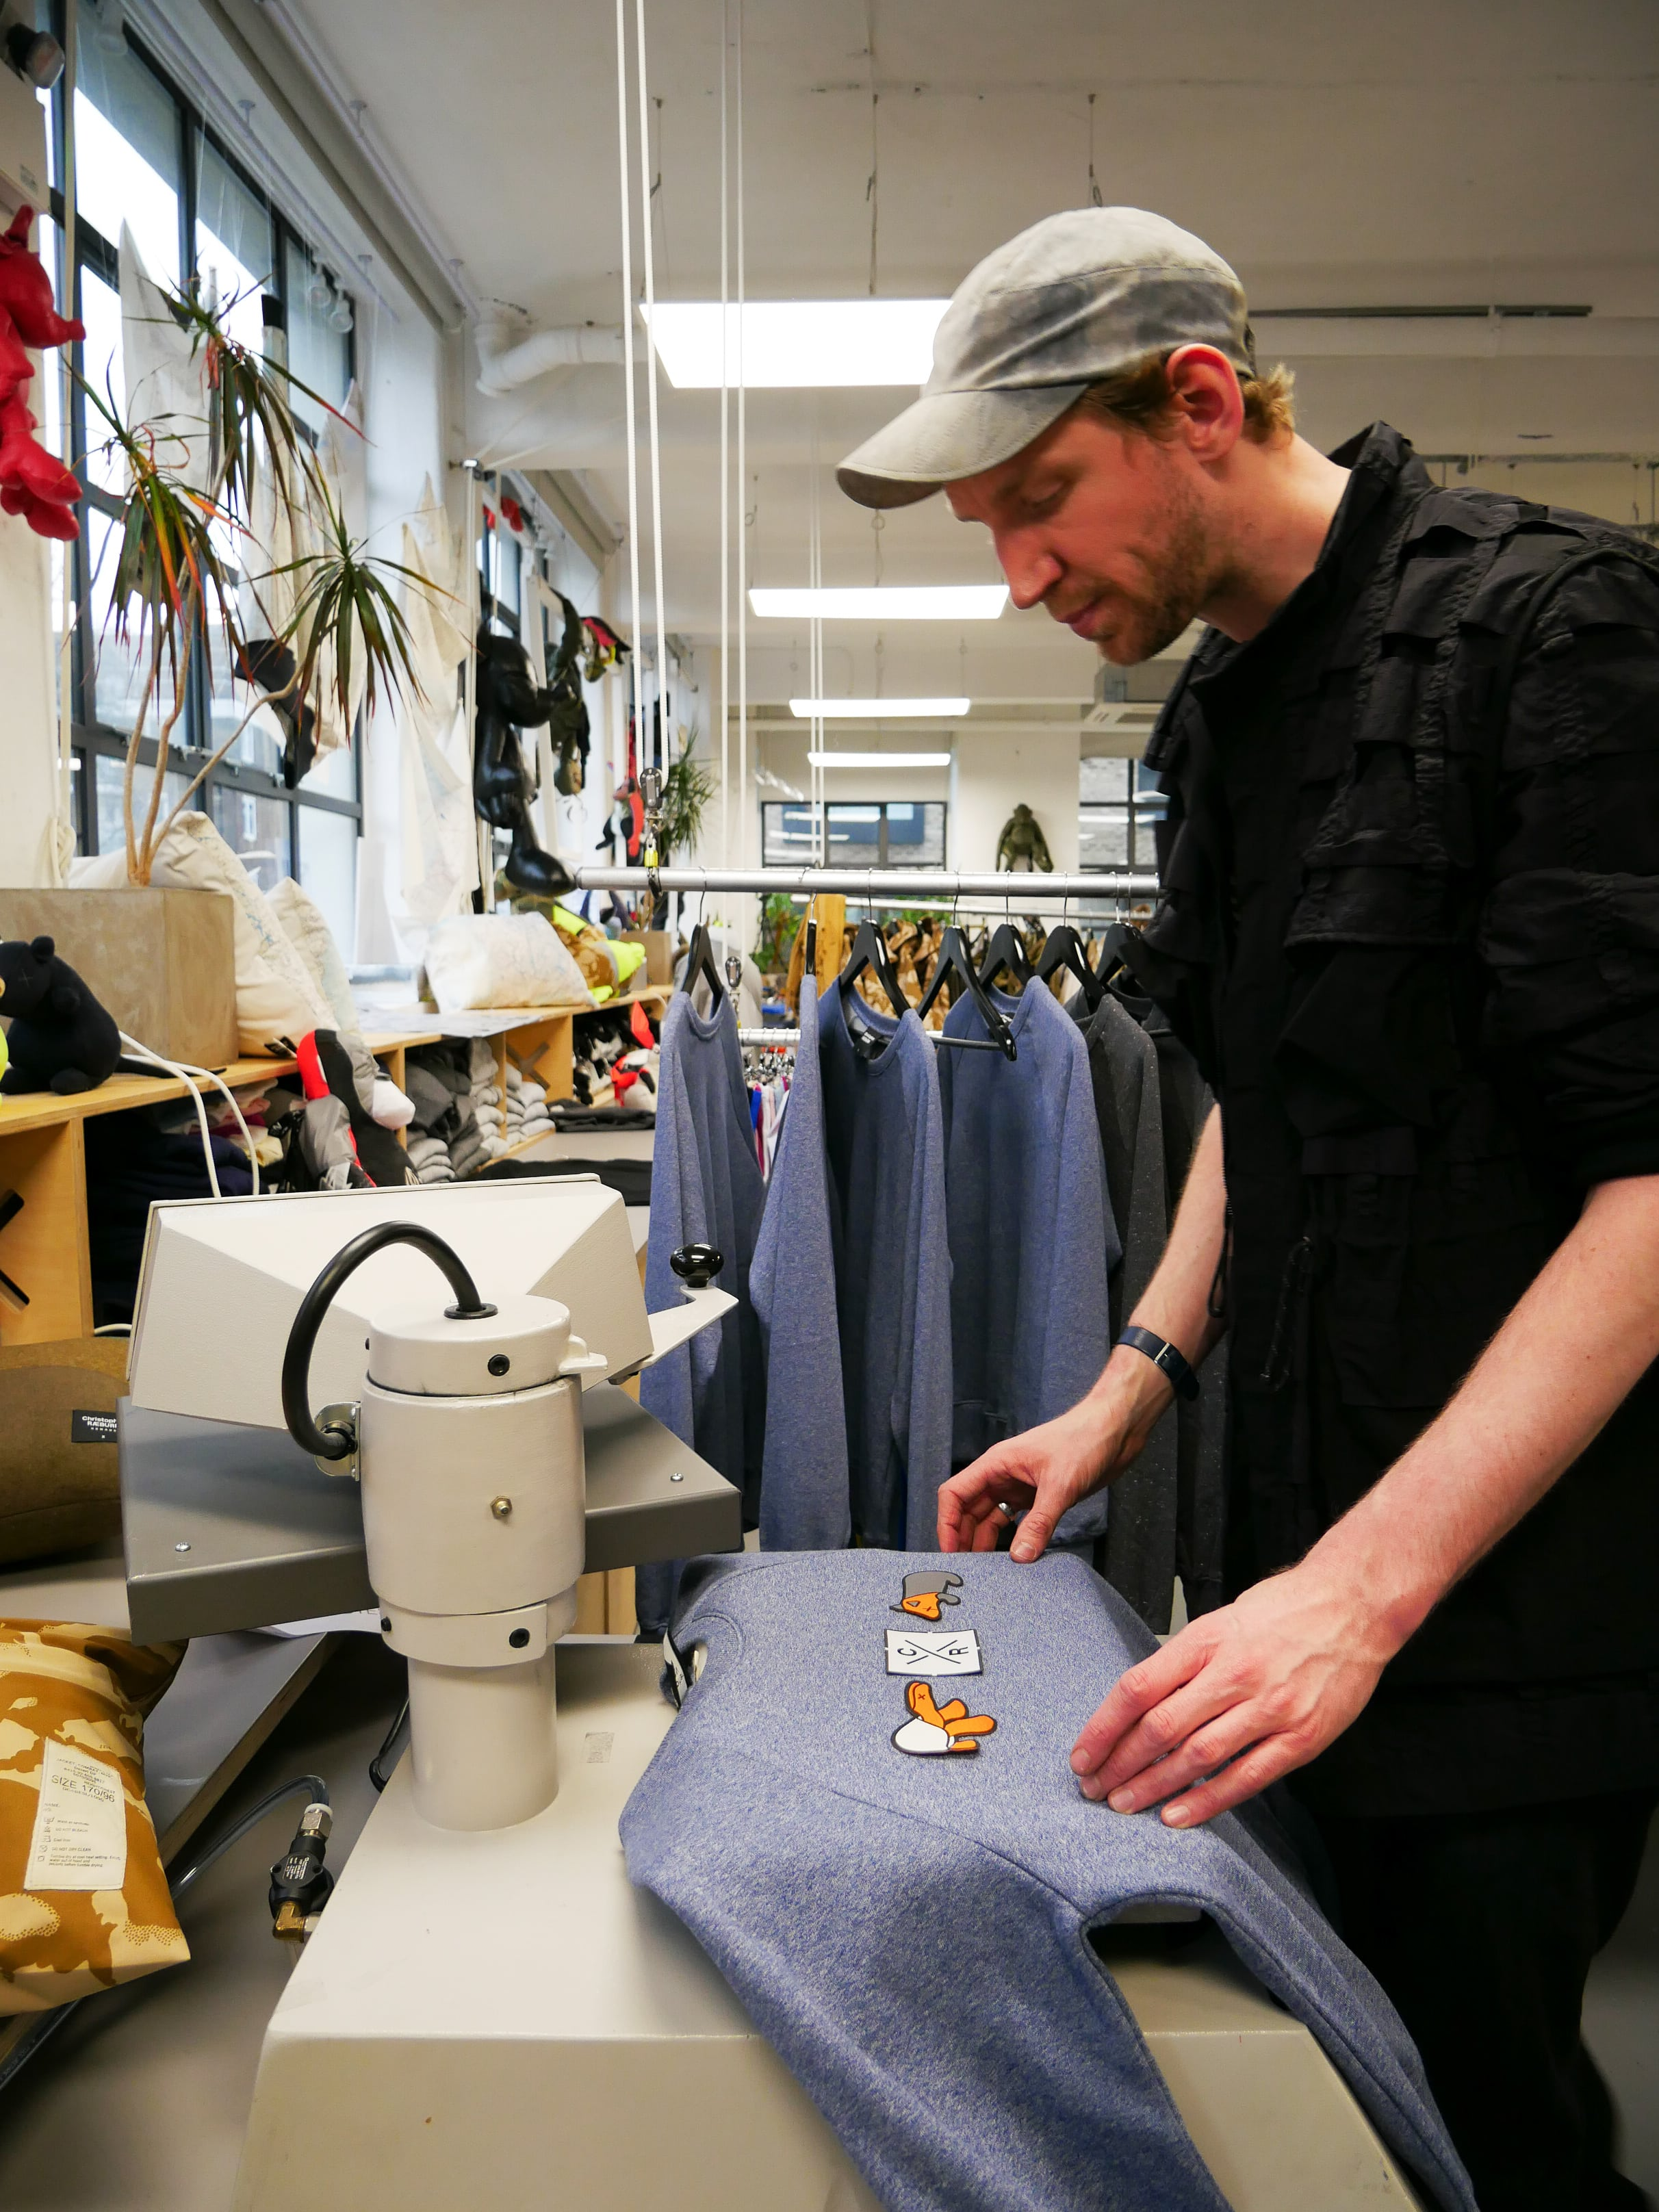 Heat pressing patches onto a sweter